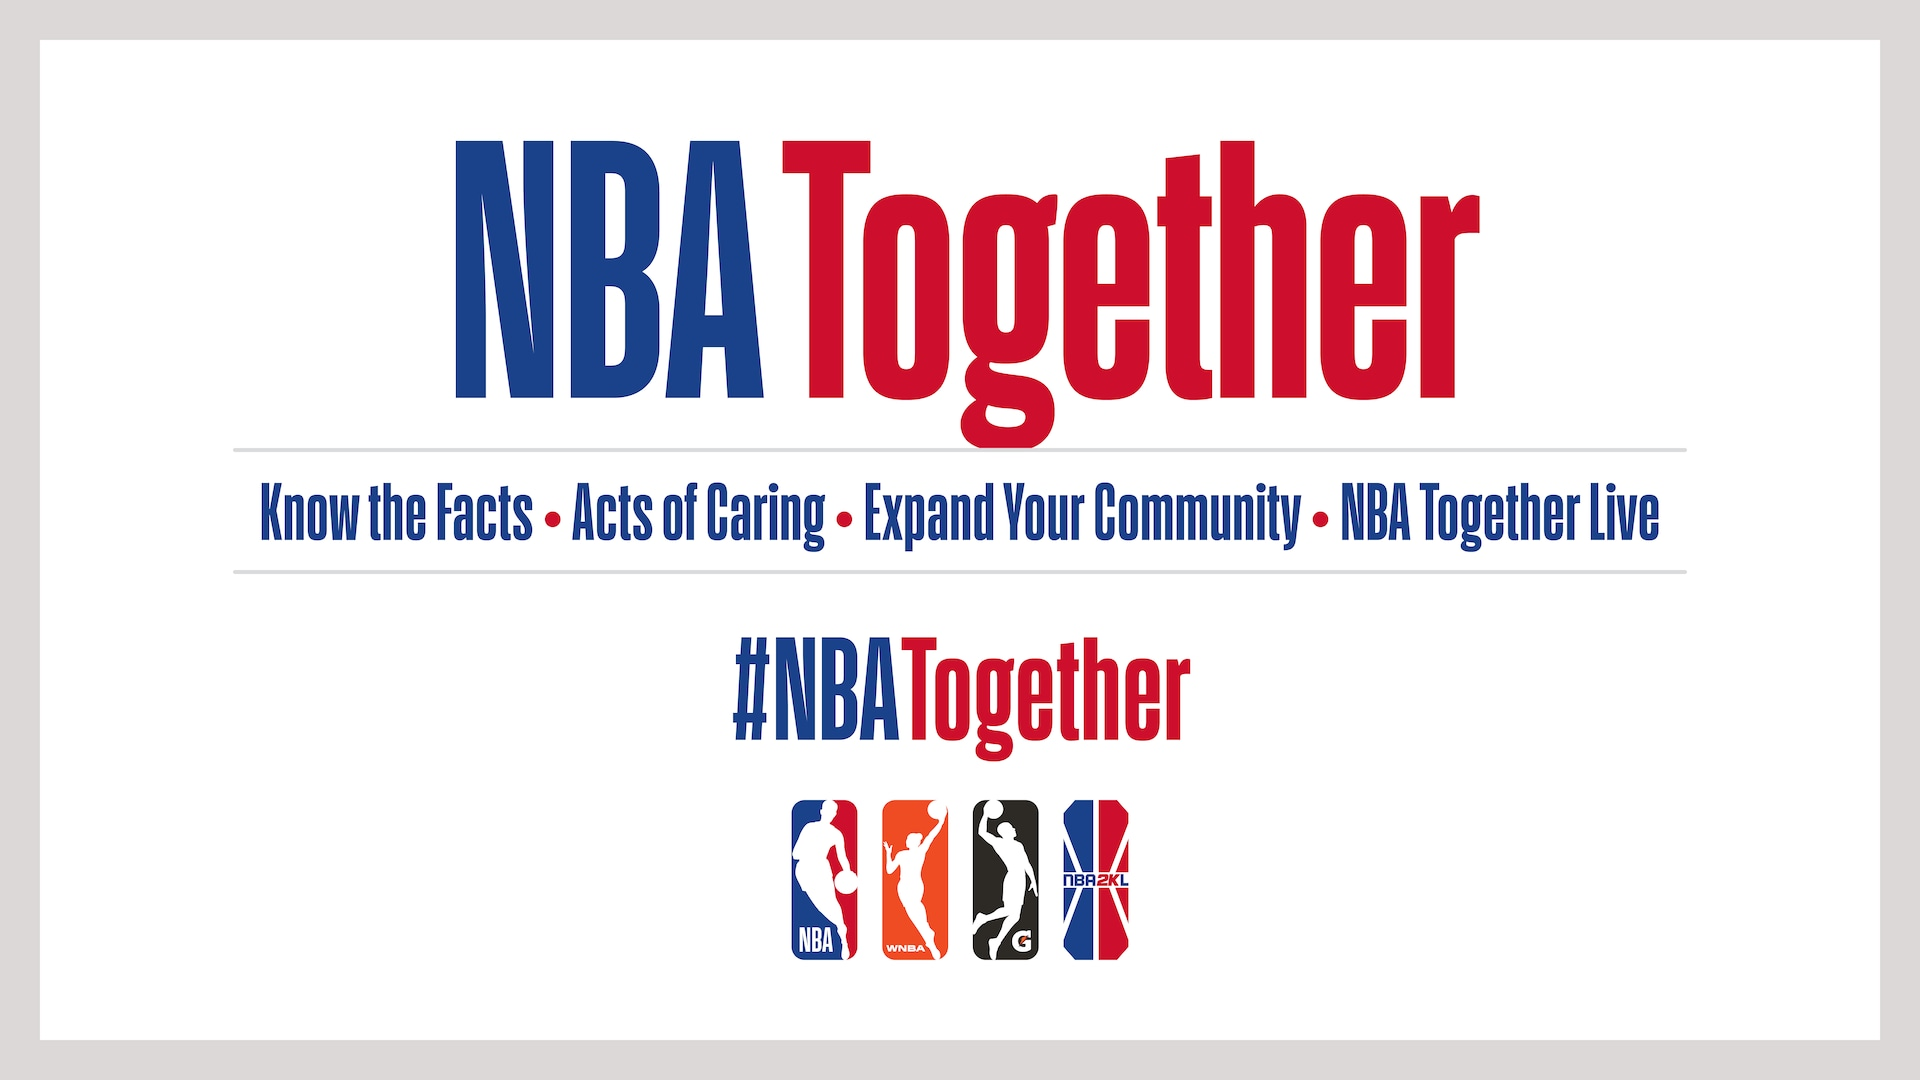 NBA launches global 'NBA Together' campaign in response to Coronavirus pandemic